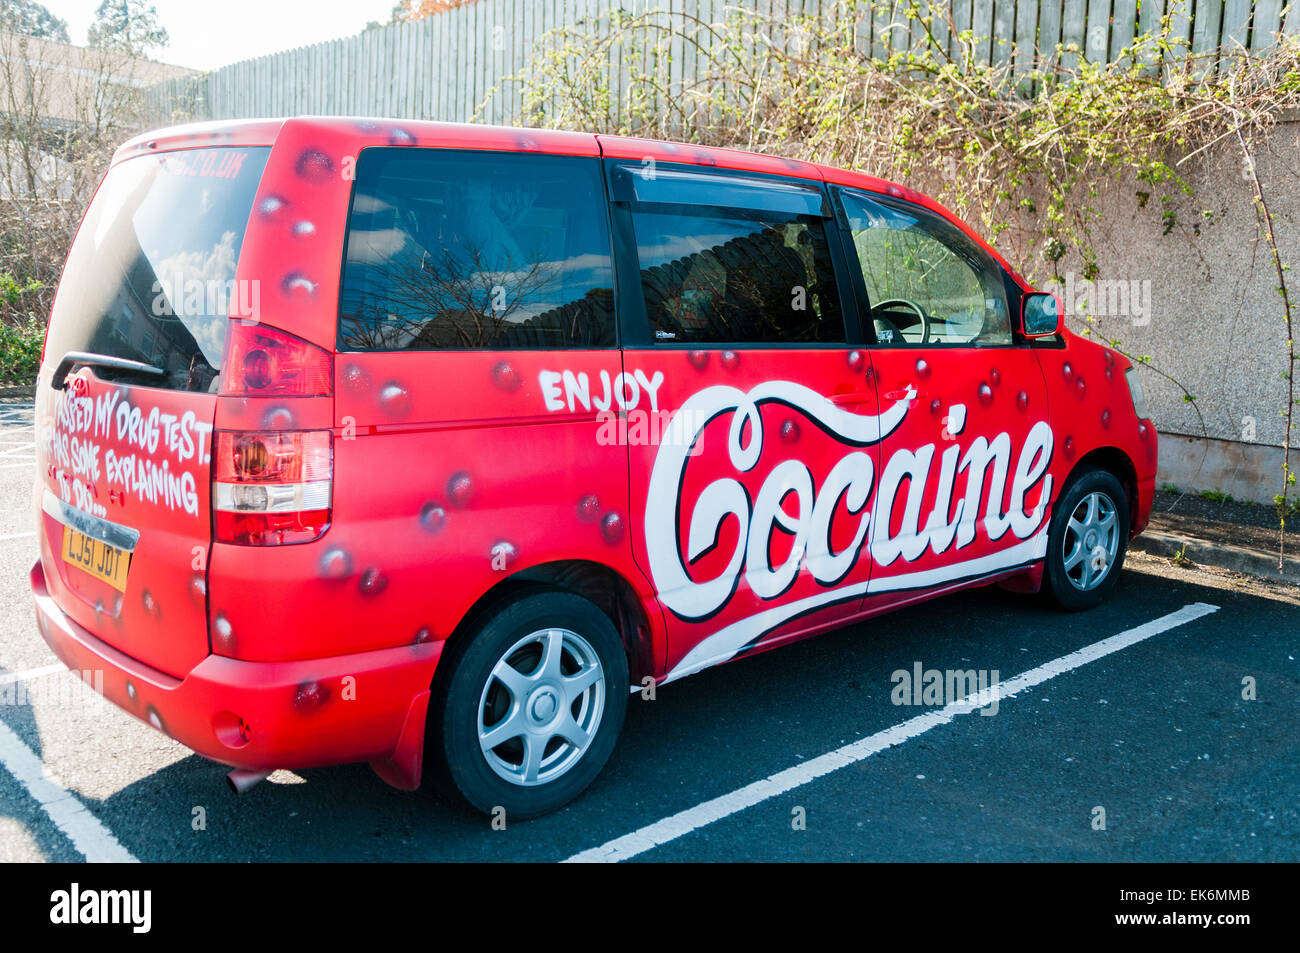 a4e1312d79 Australian company Wicked Campers campervan with